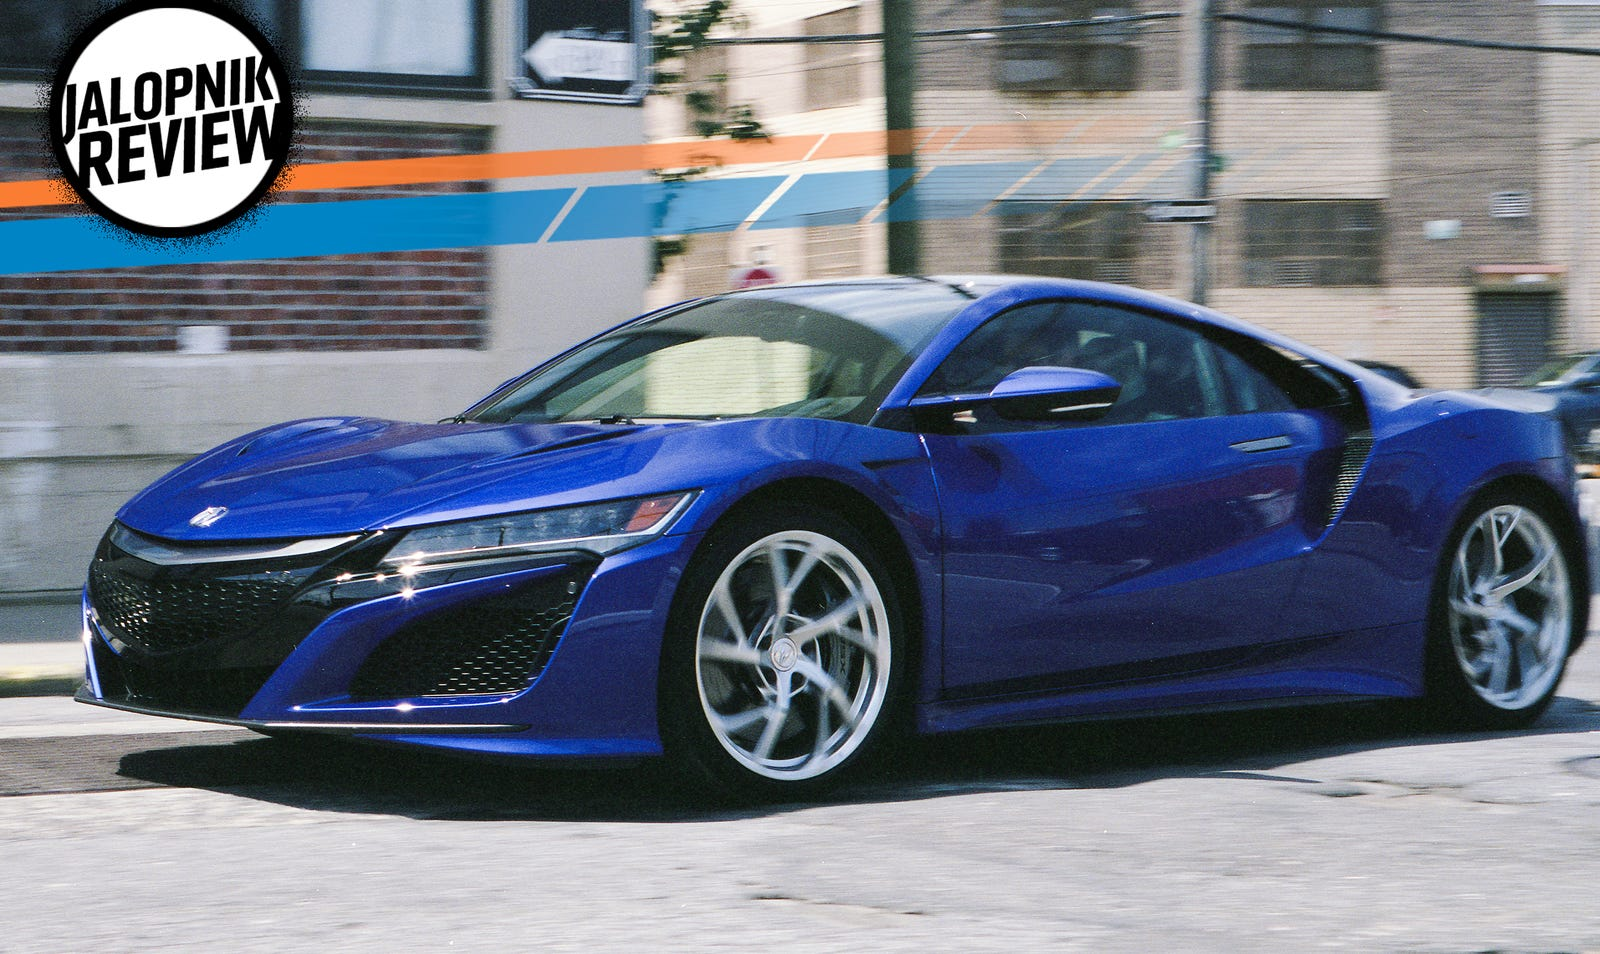 2017 Acura Nsx For Sale >> The 2017 Acura Nsx Is Still The Crazy Fast Spaceship You Can